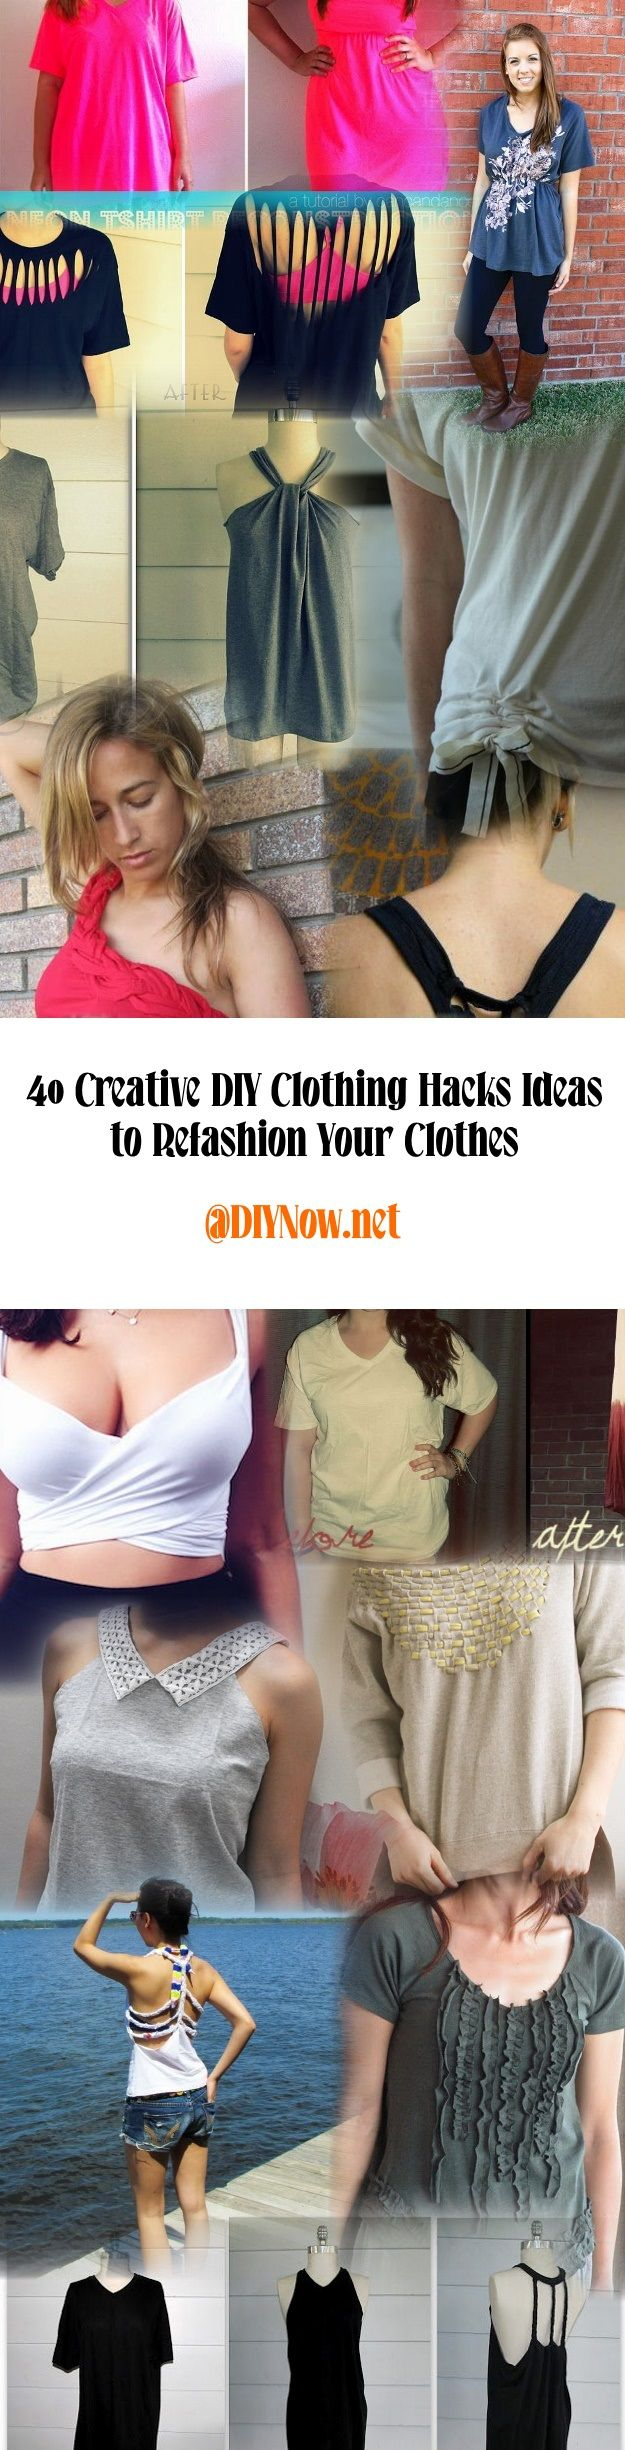 40 Creative DIY Clothing Hacks Ideas to Refashion Your Clothes